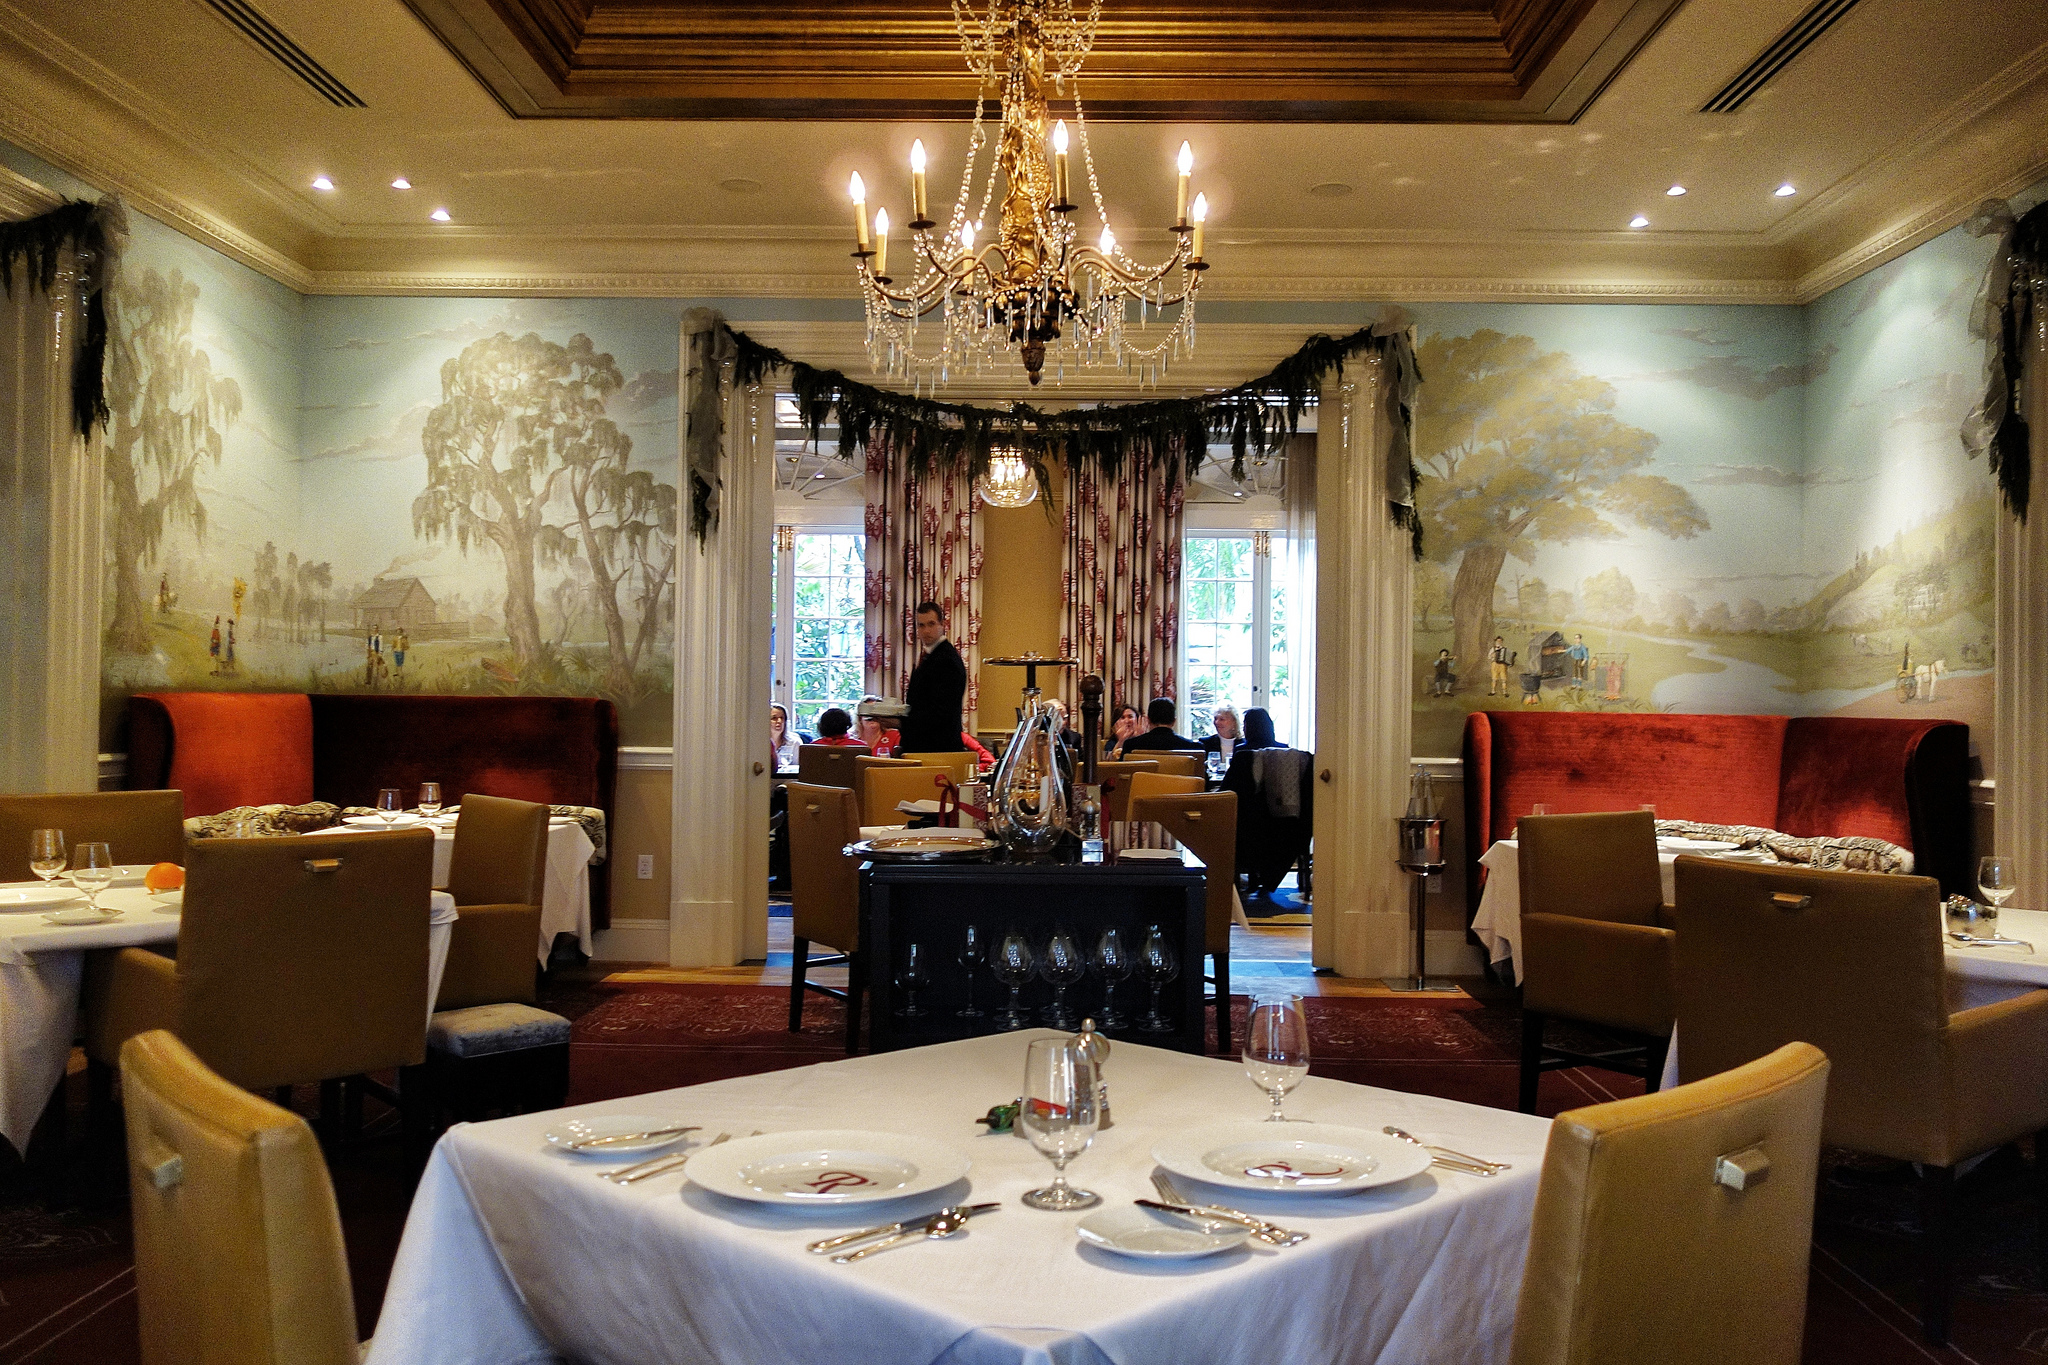 Restaurant R'evolution is always beautifully dressed for the holidays. (Photo: Paul Broussard)